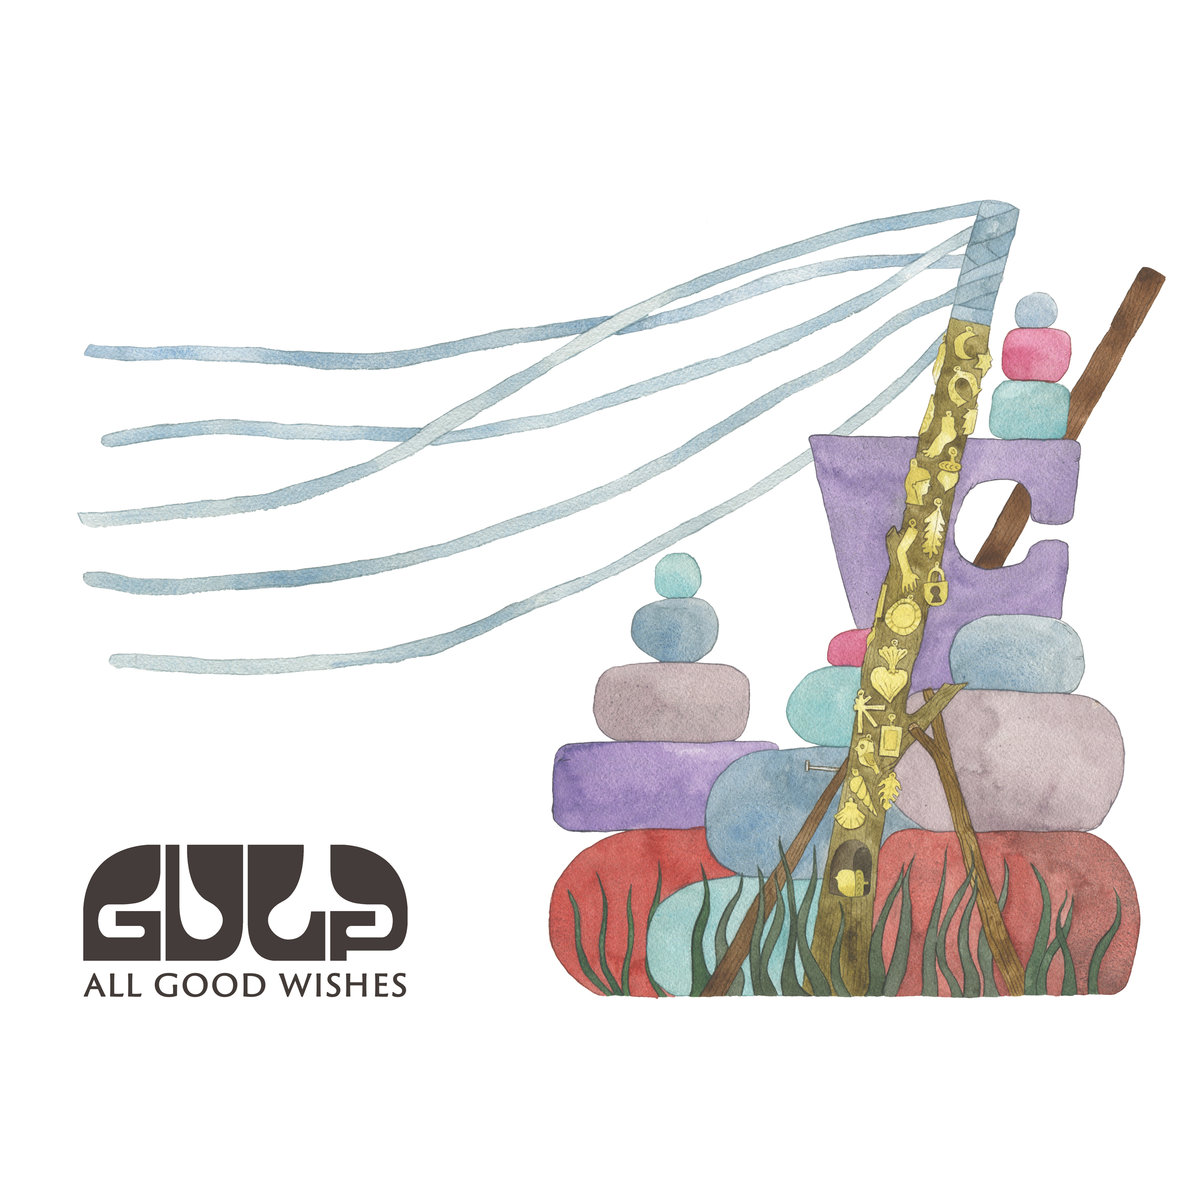 Gulp All Good Wishes Review For Northern Transmissions